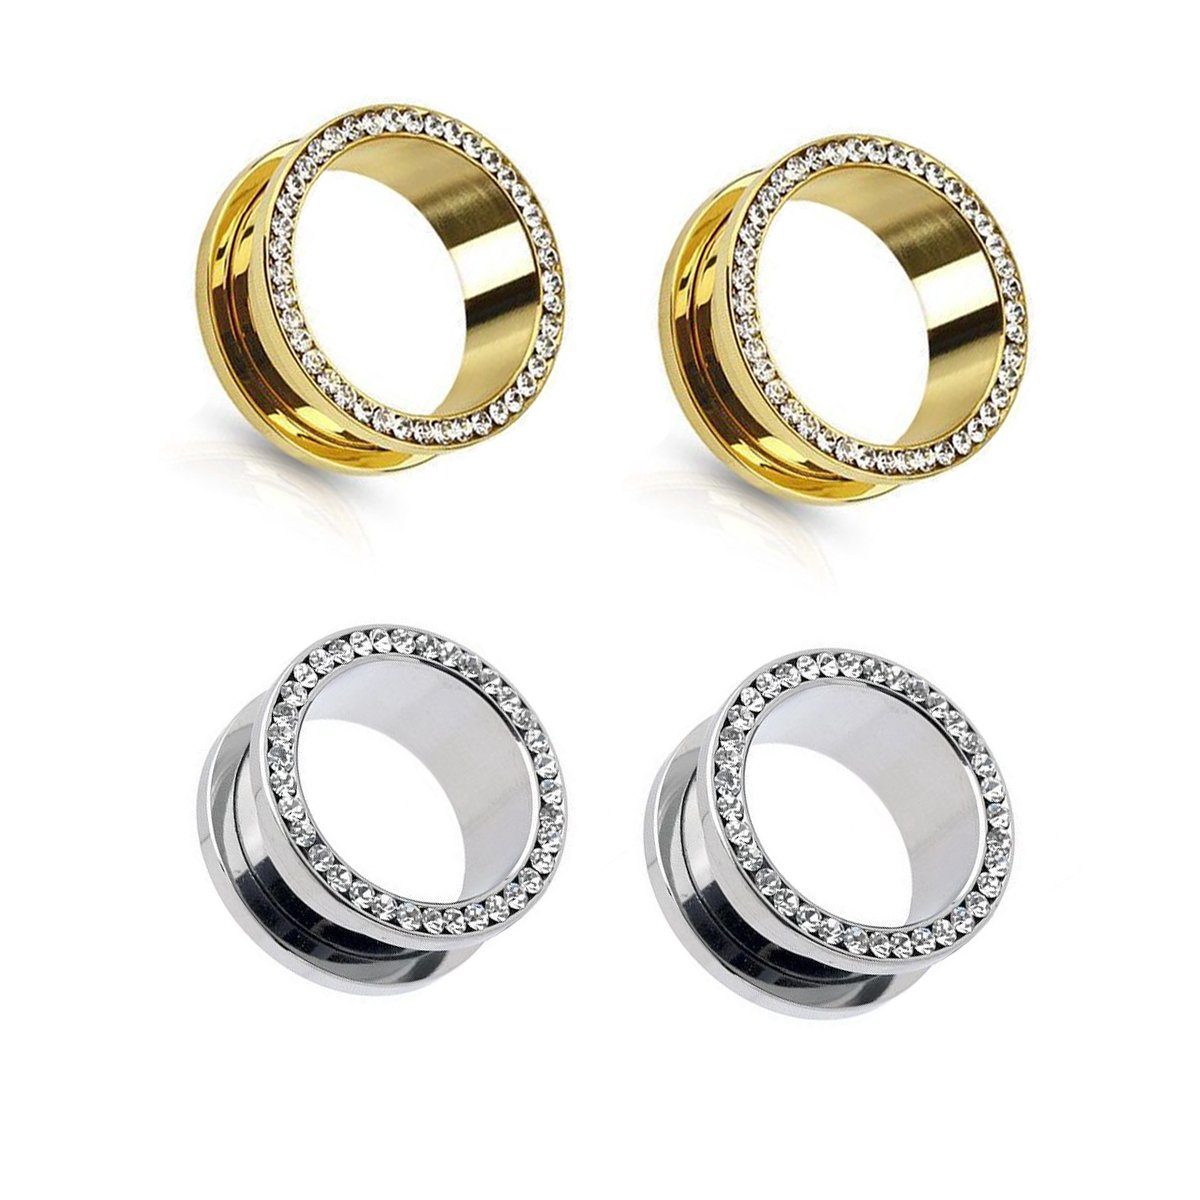 2 Pairs Screw Tunnel Expander Ear Plugs CZ Piercing Stainless Steel Piercing Jewelry MissDaisy